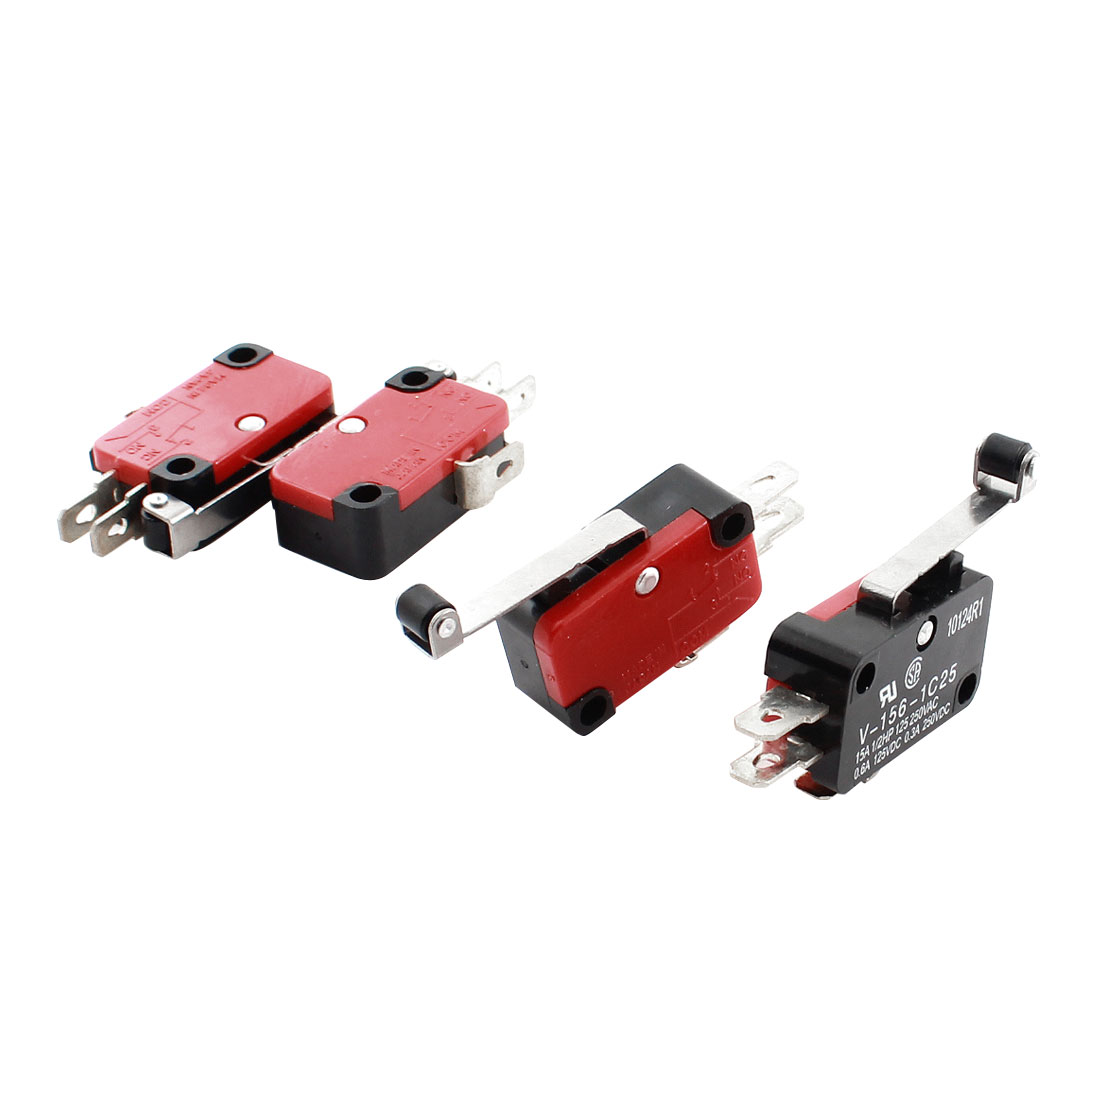 Roller Hinge Lever NO NC Actuator Micro Limit Switch DC 125V 0.6A AC 250V 0.3A 4pcs